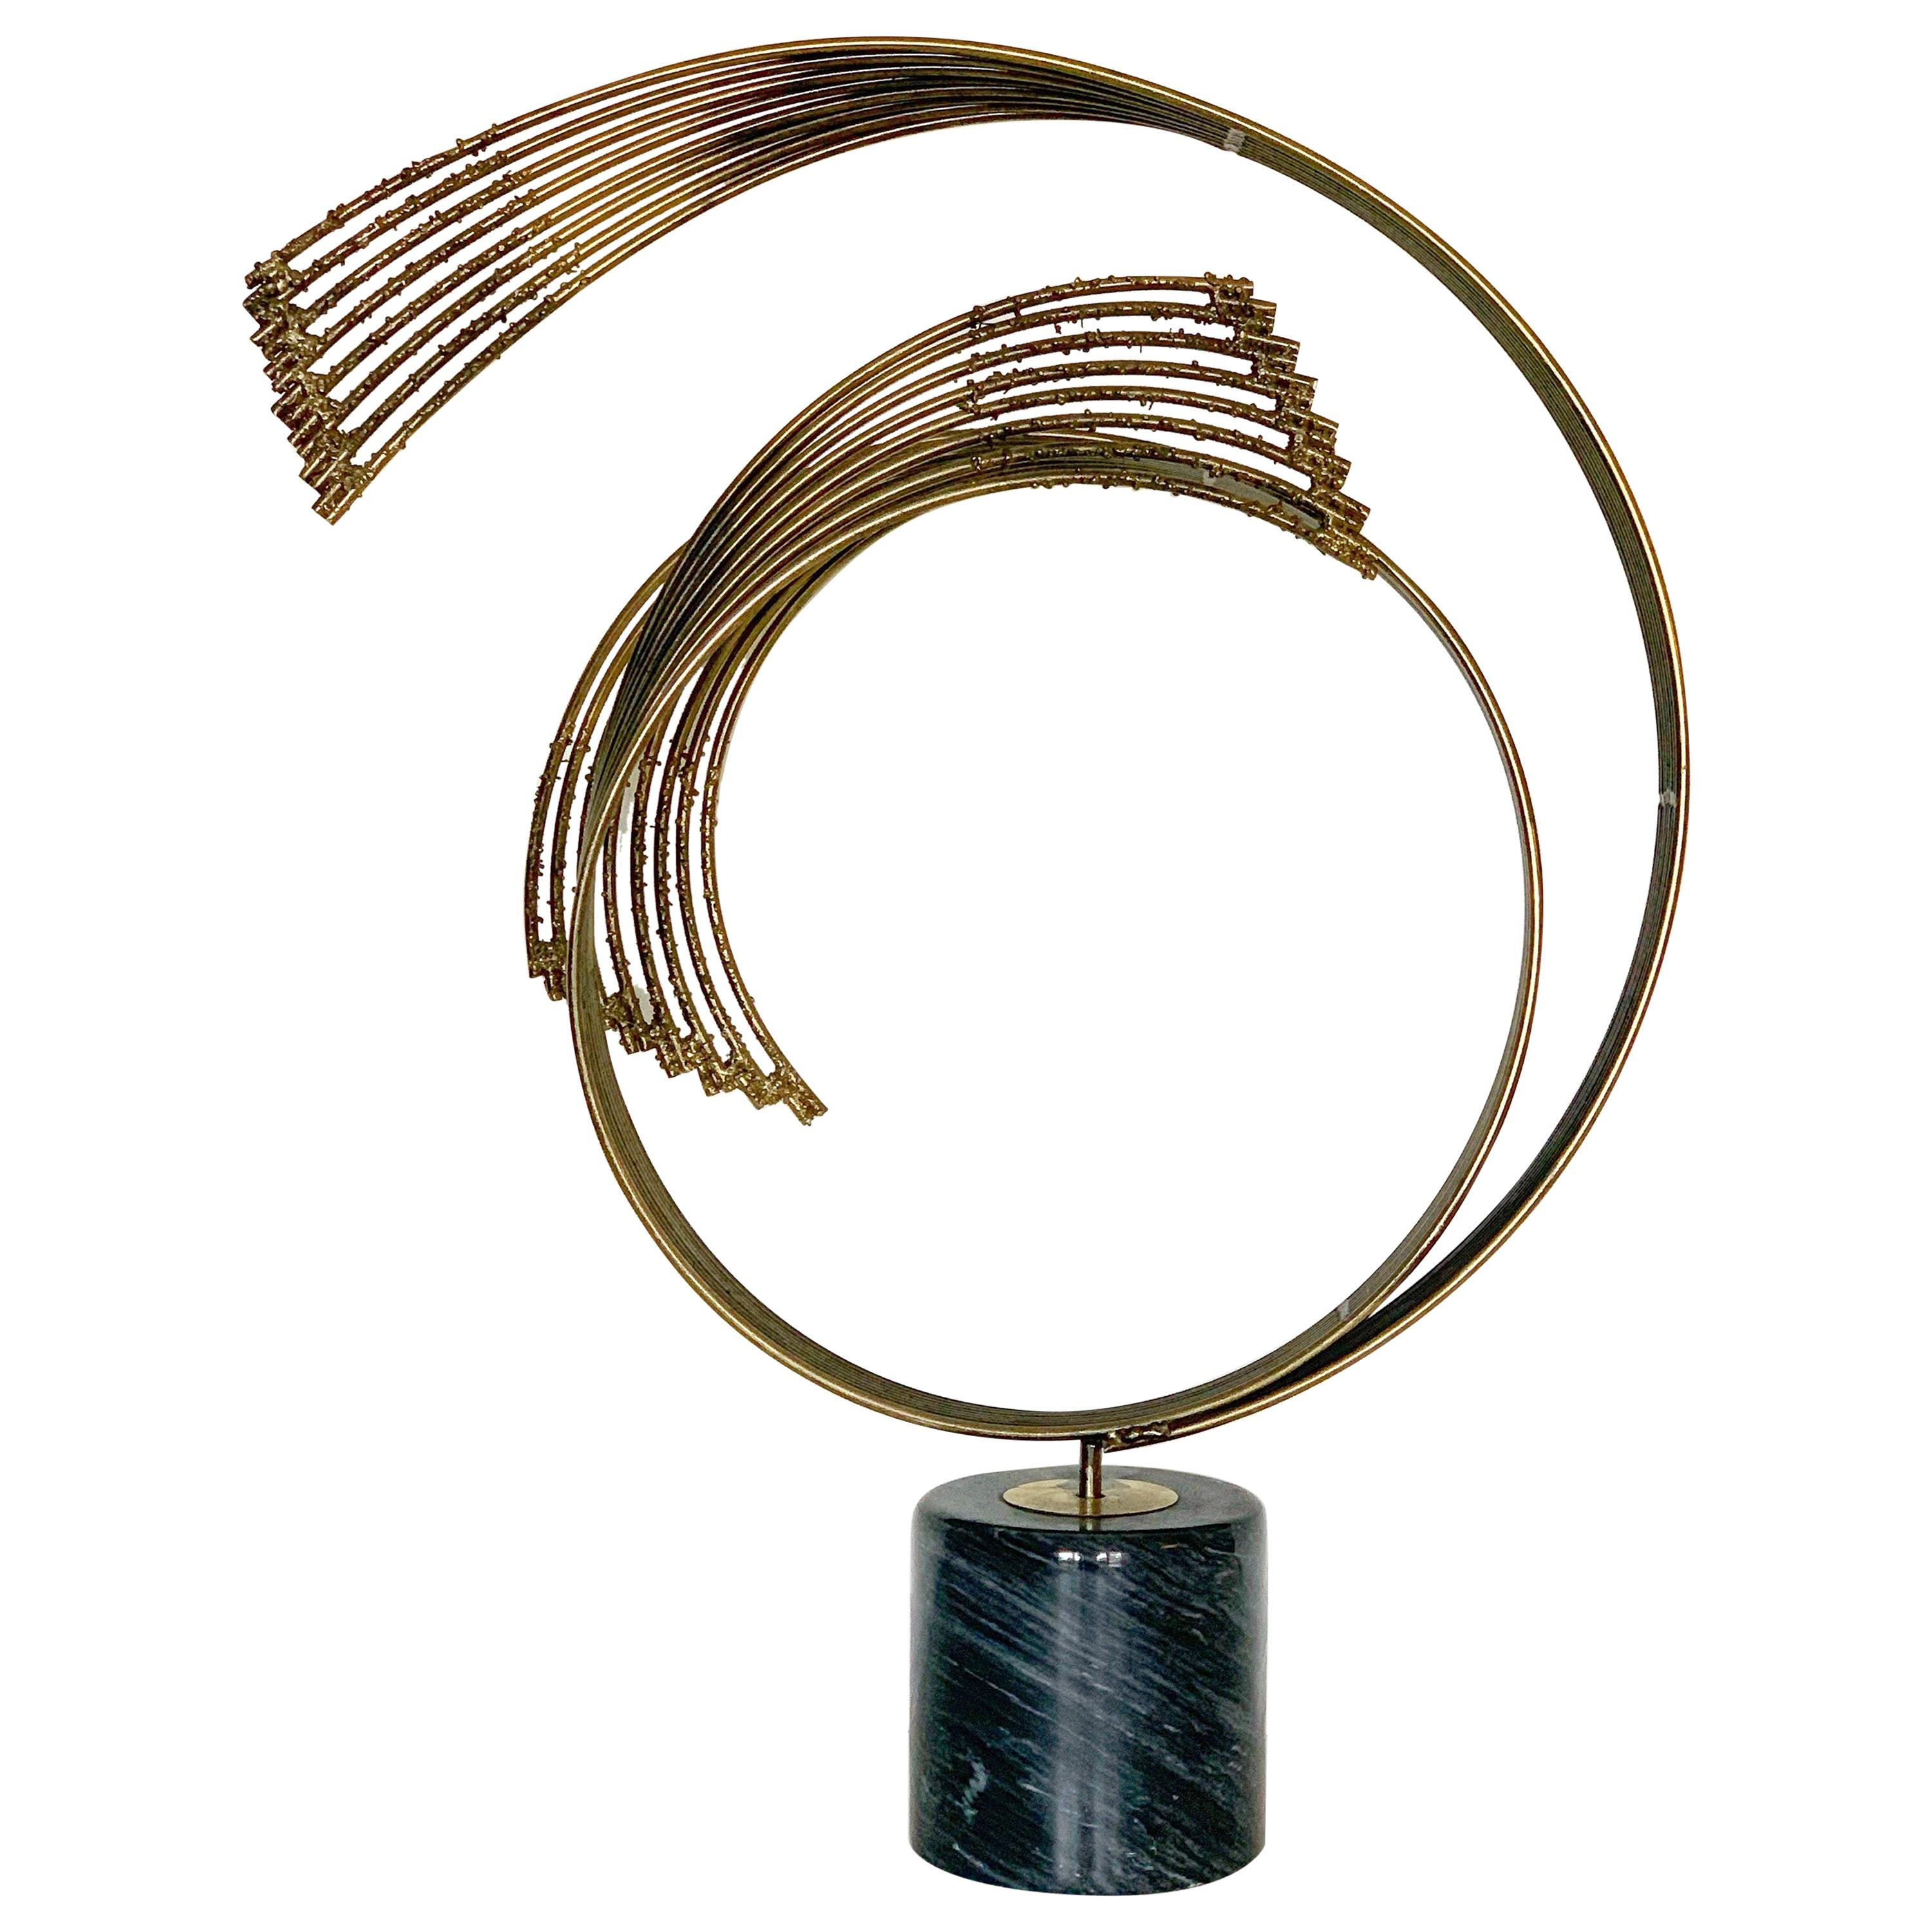 Curtis Jere Brutalist Modern Spiral Sculpture in Iron and Marble